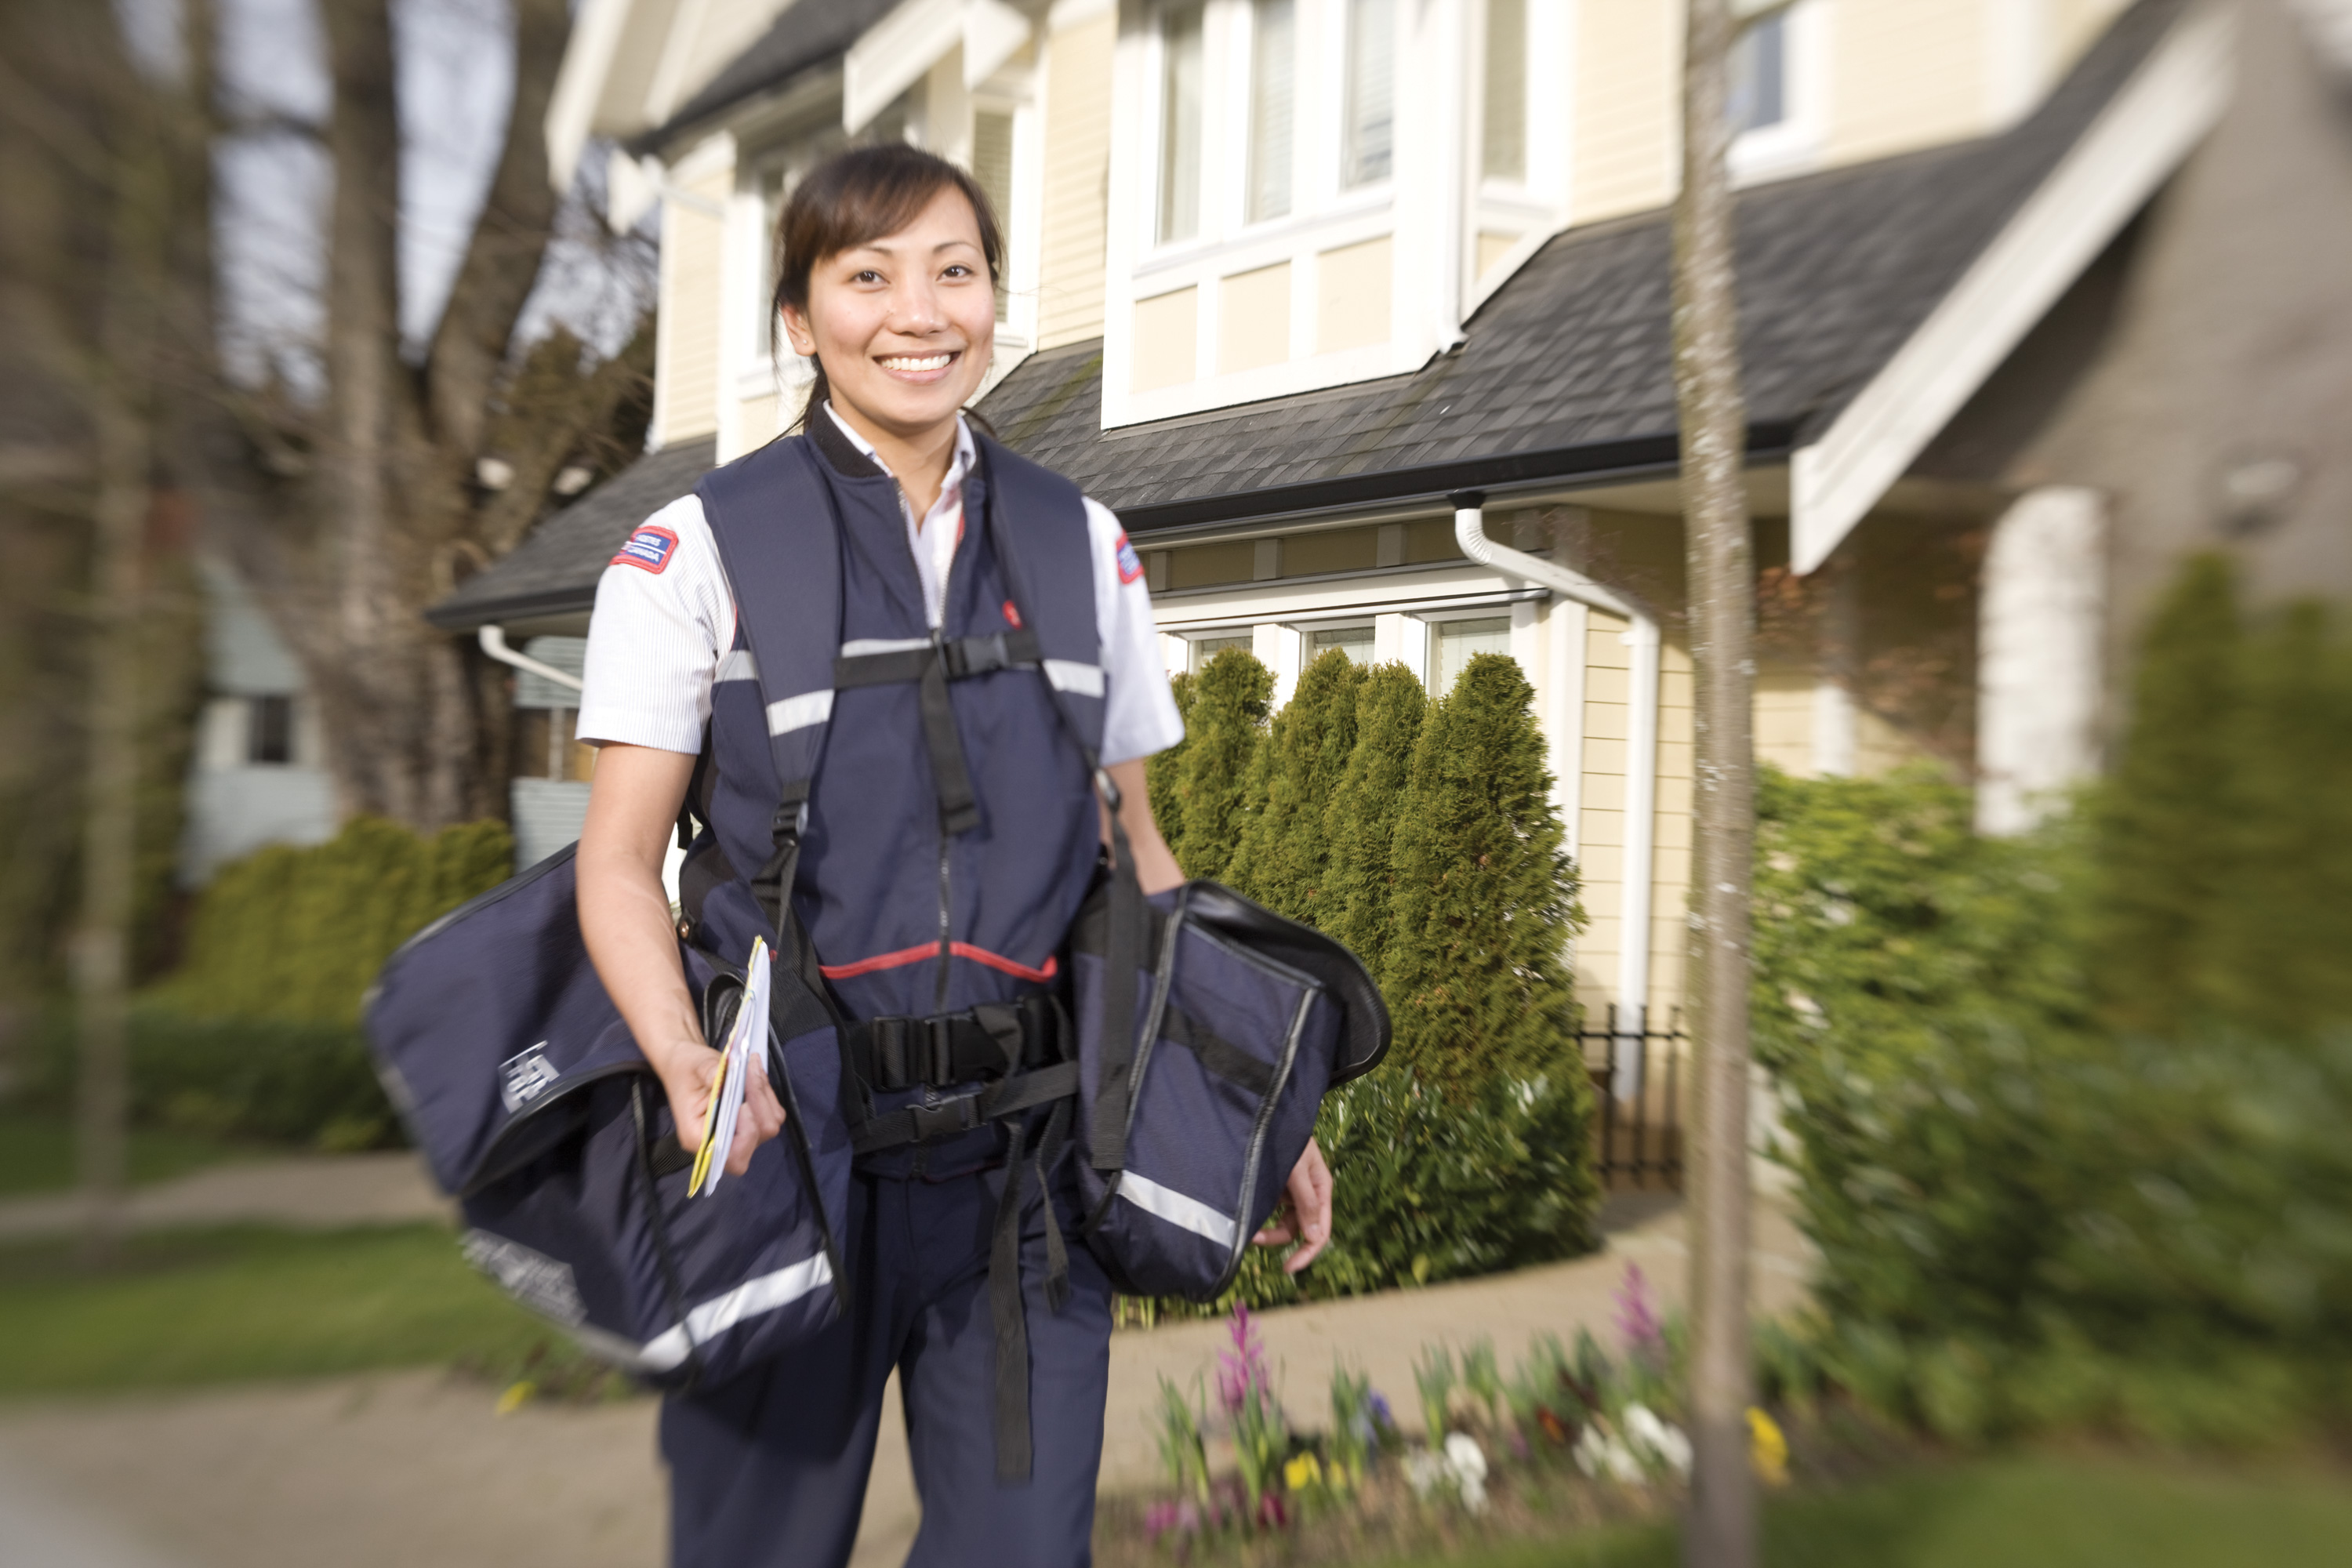 Letter Carrier - Vancouver